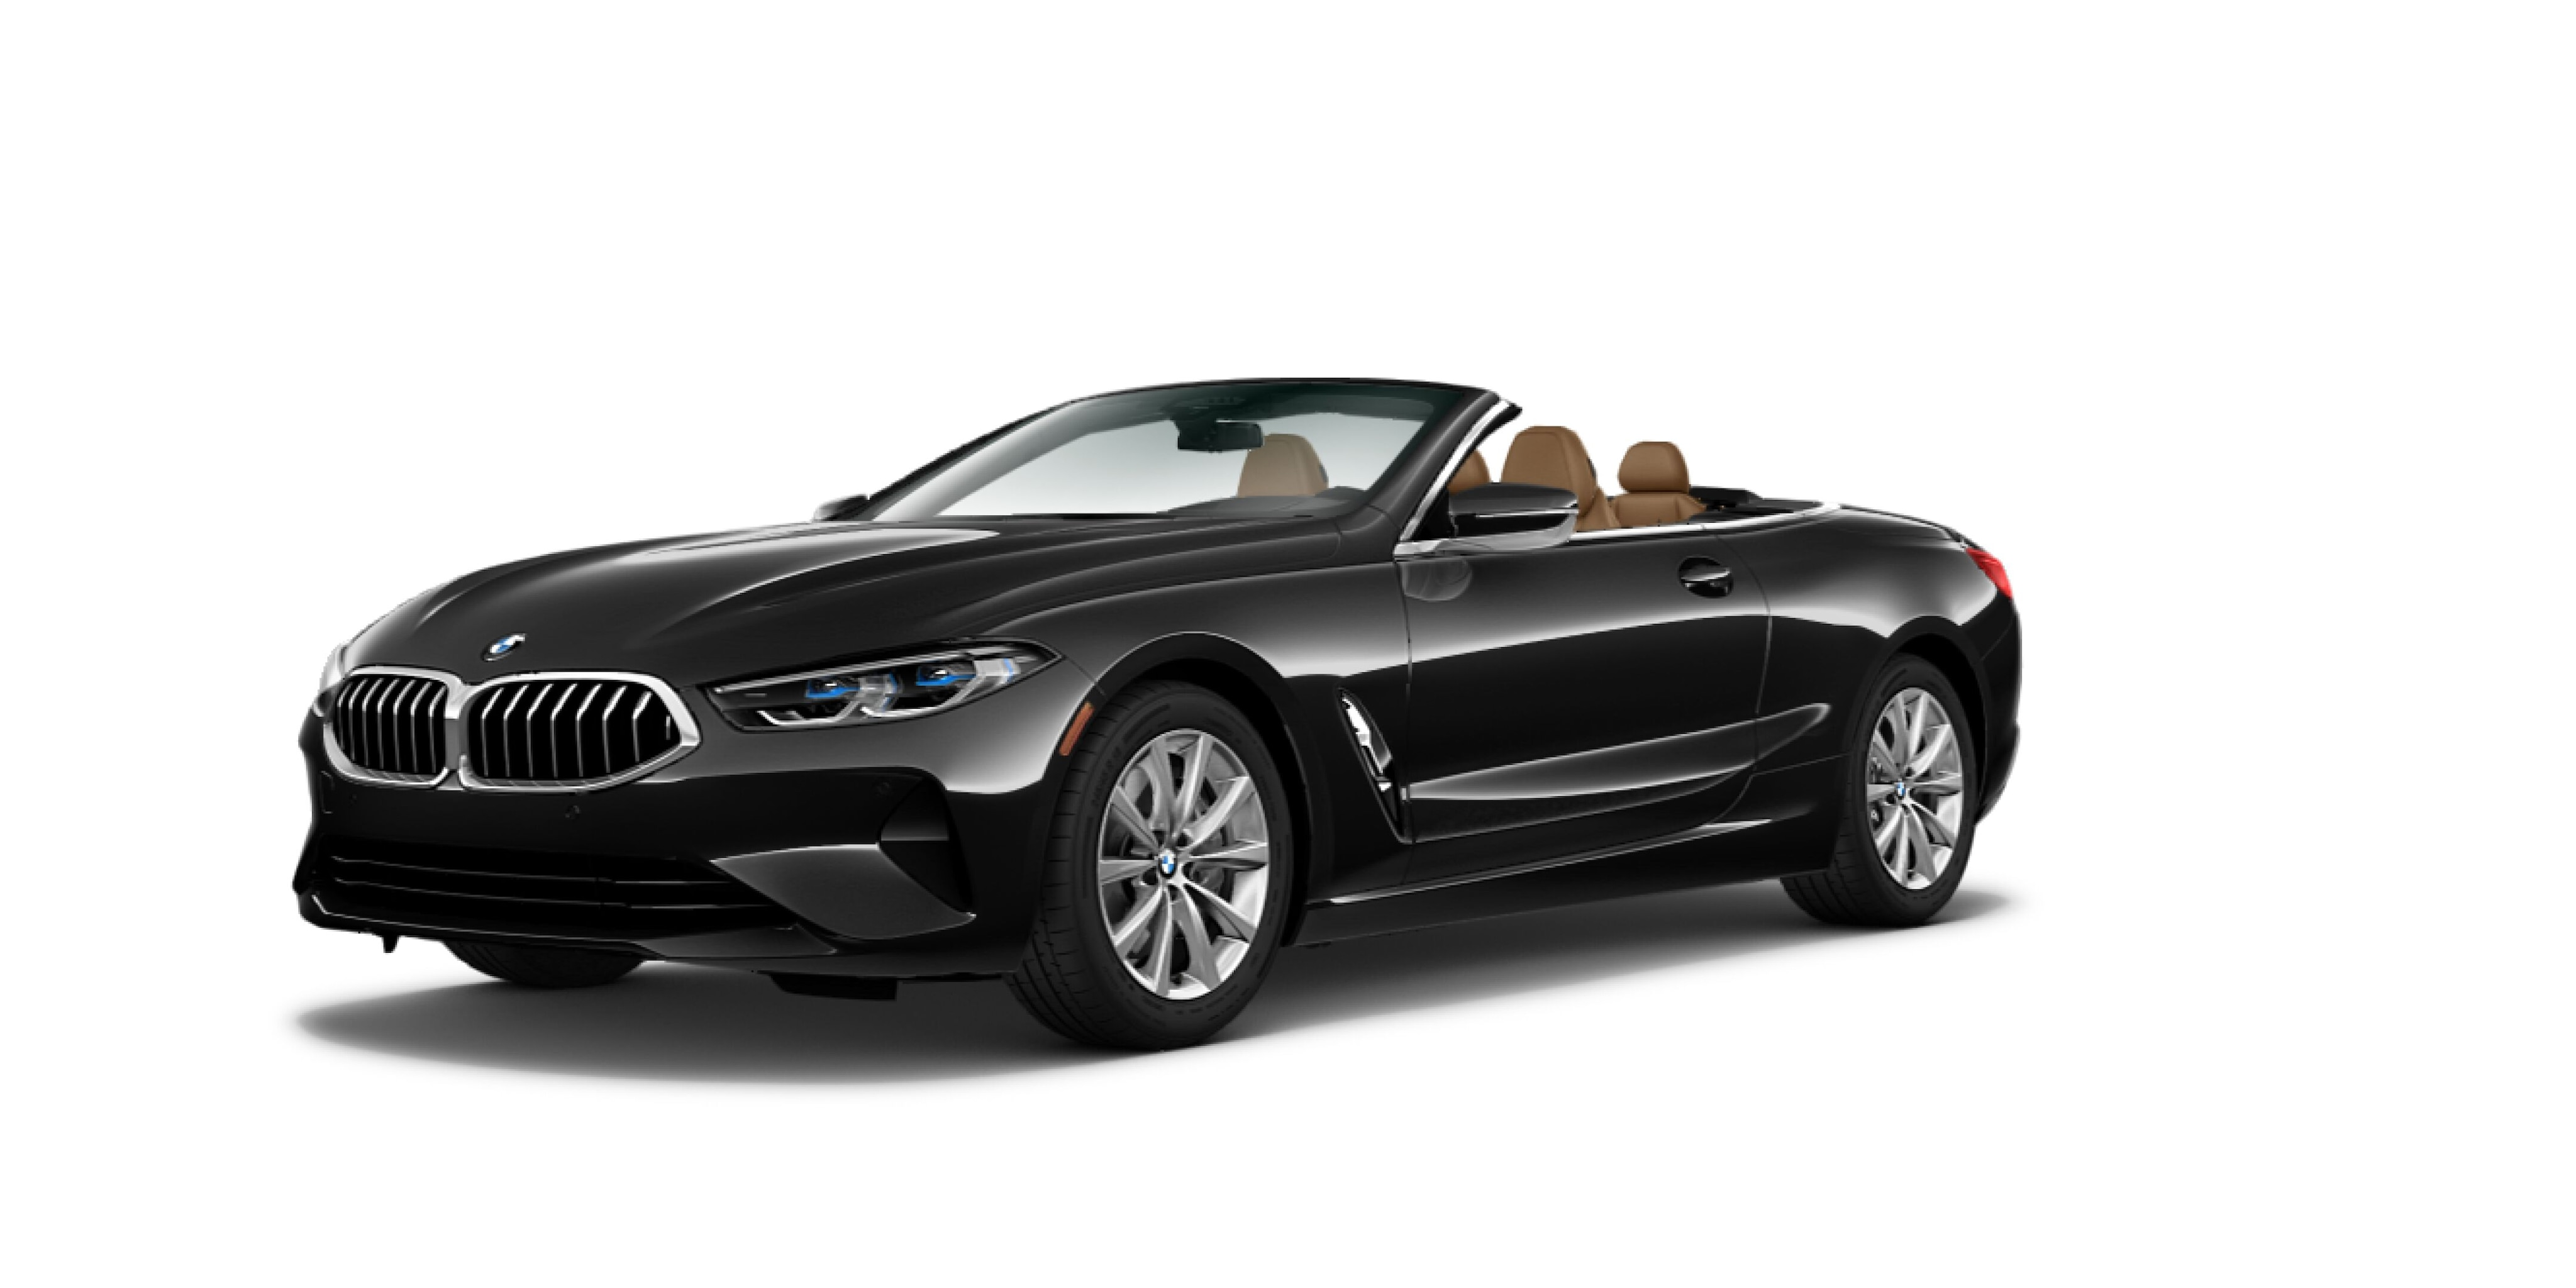 2020 BMW 840i xDrive Convertible